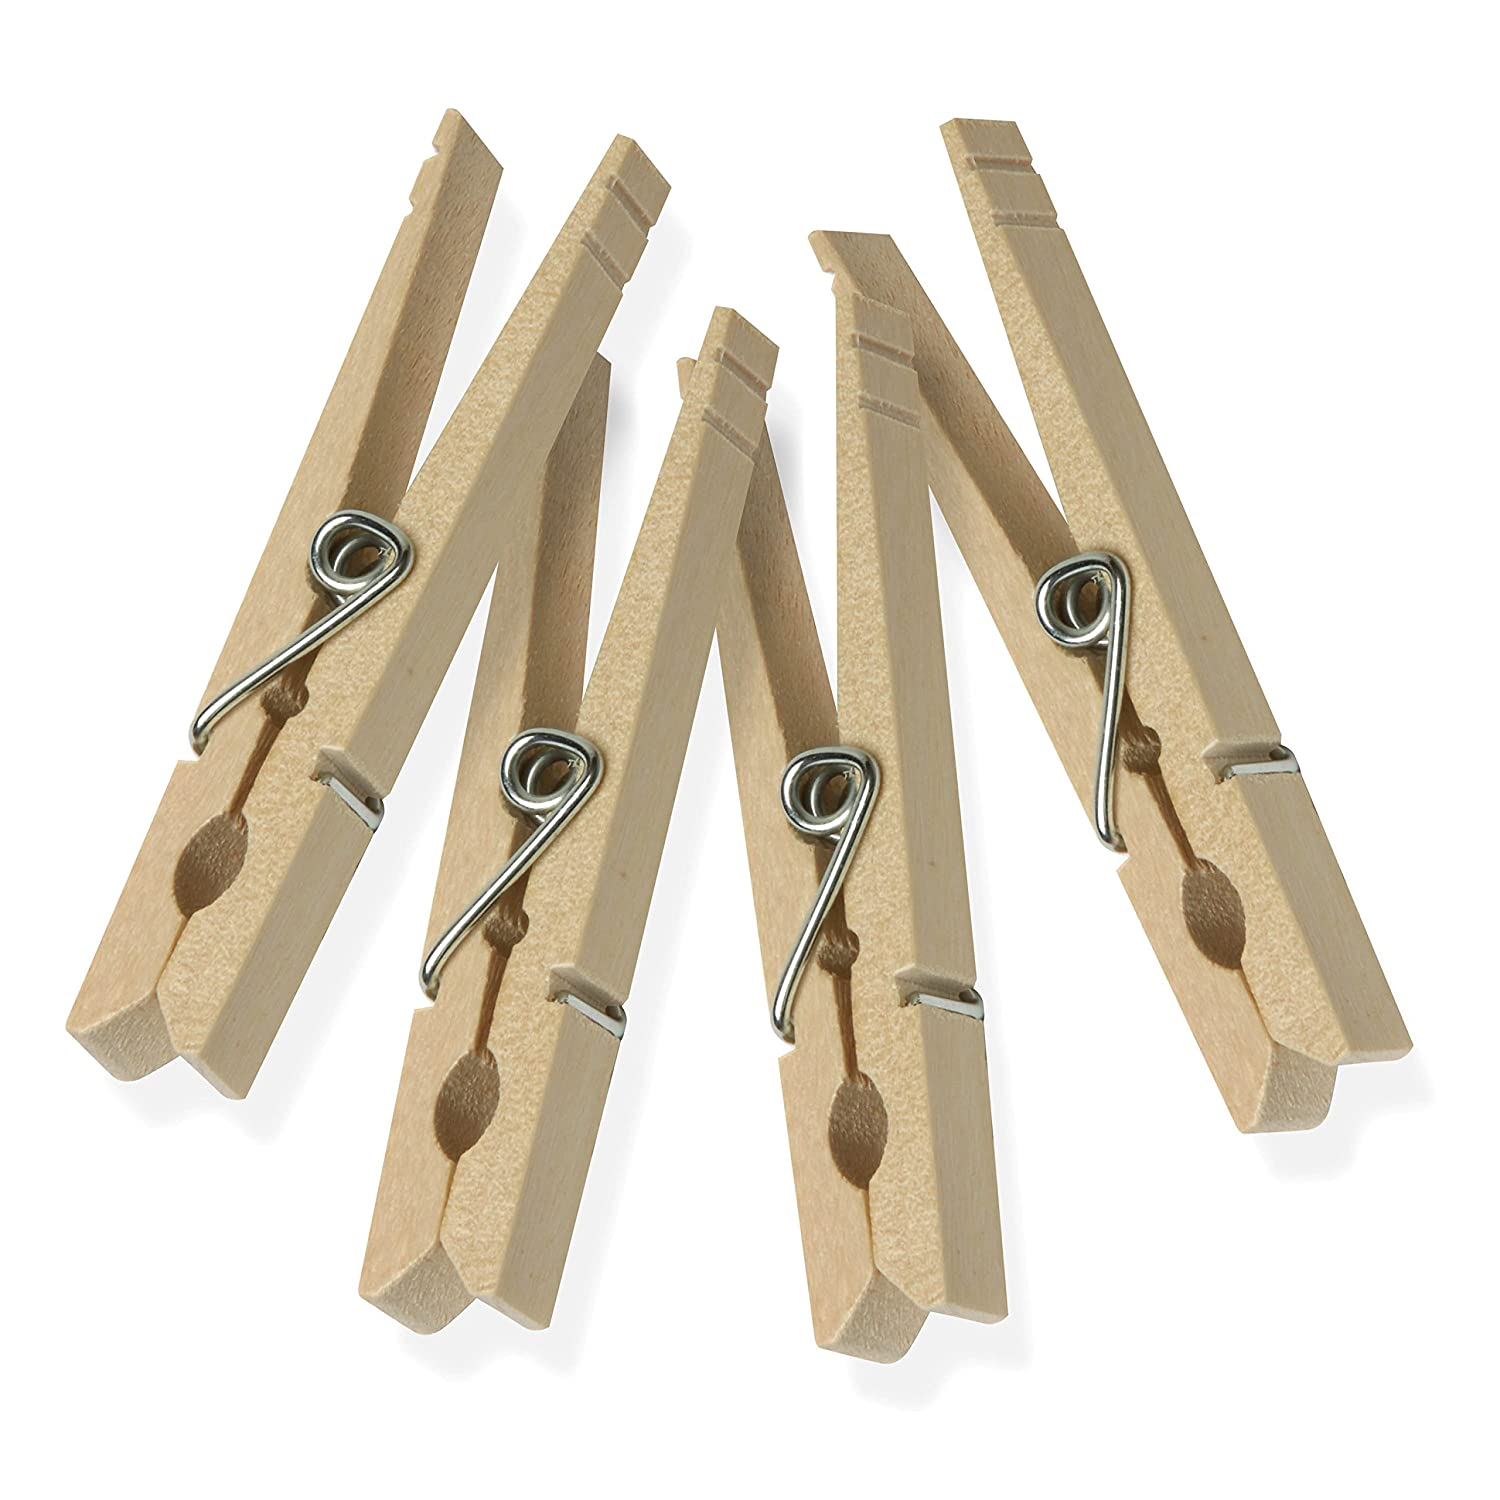 Wood Clothespins with Spring, 100-Pack, 3.3-inches Length